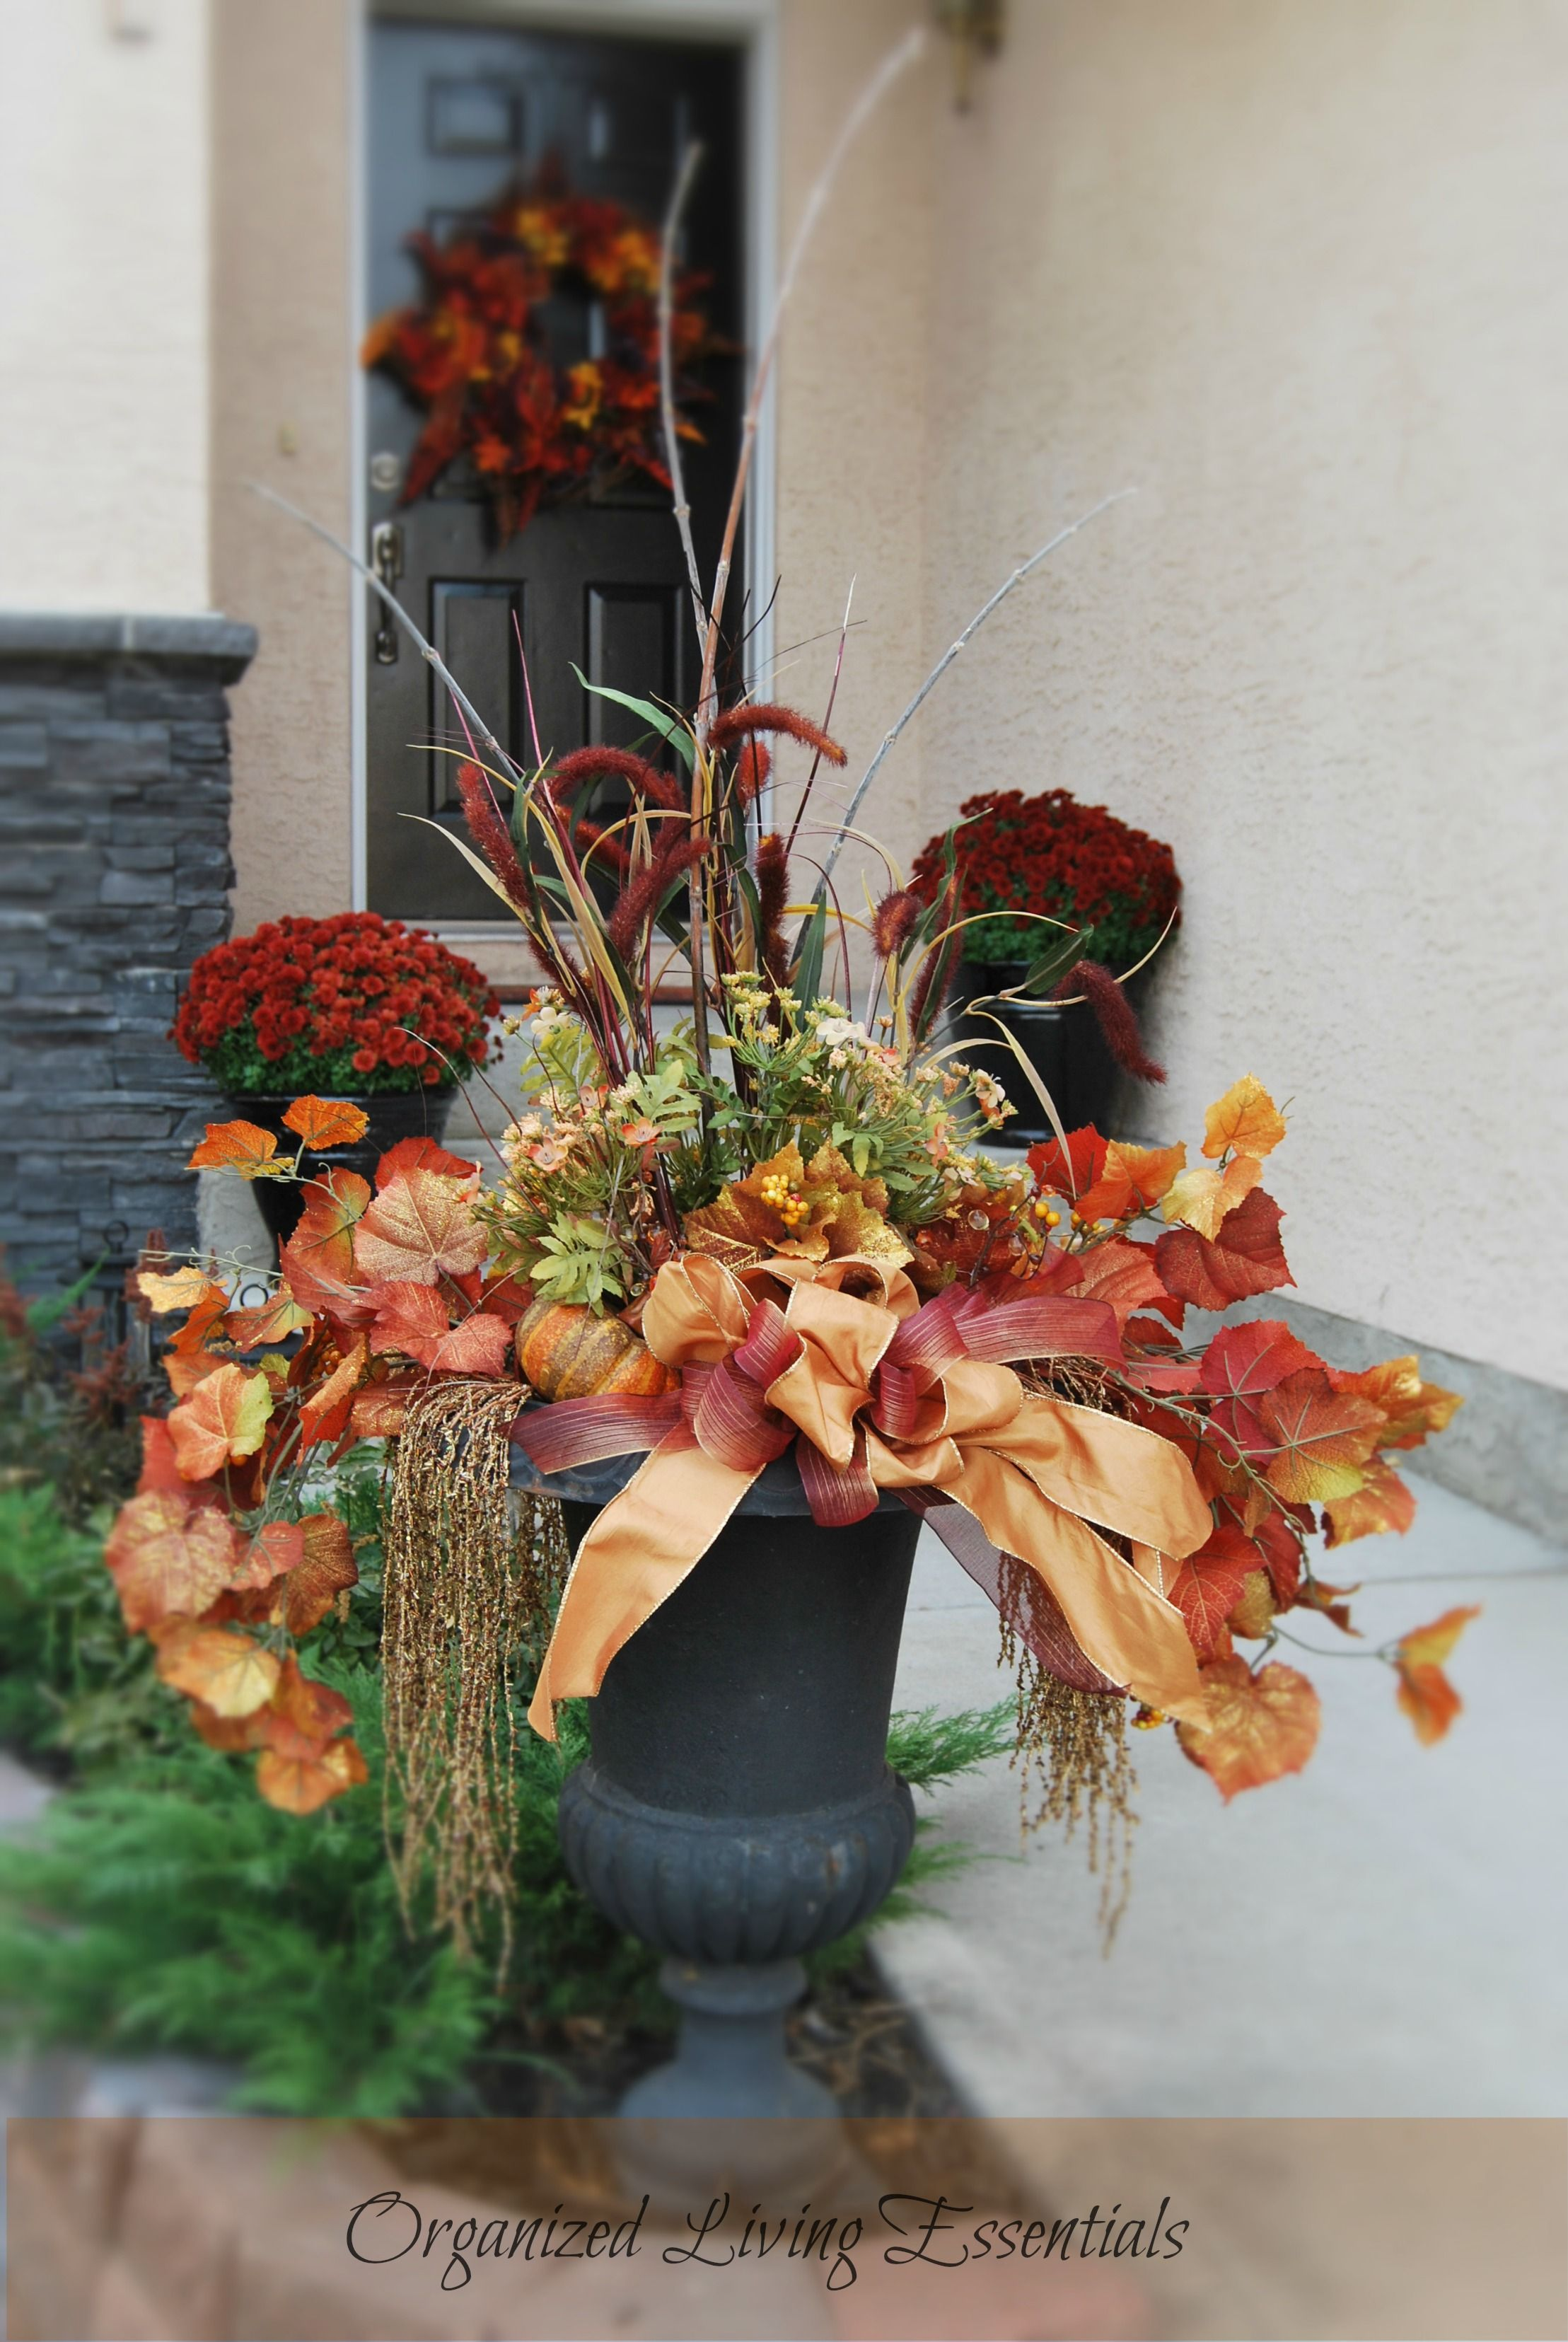 autumn door decorations | Feel free to ask me any questions about this project. I would love to ...